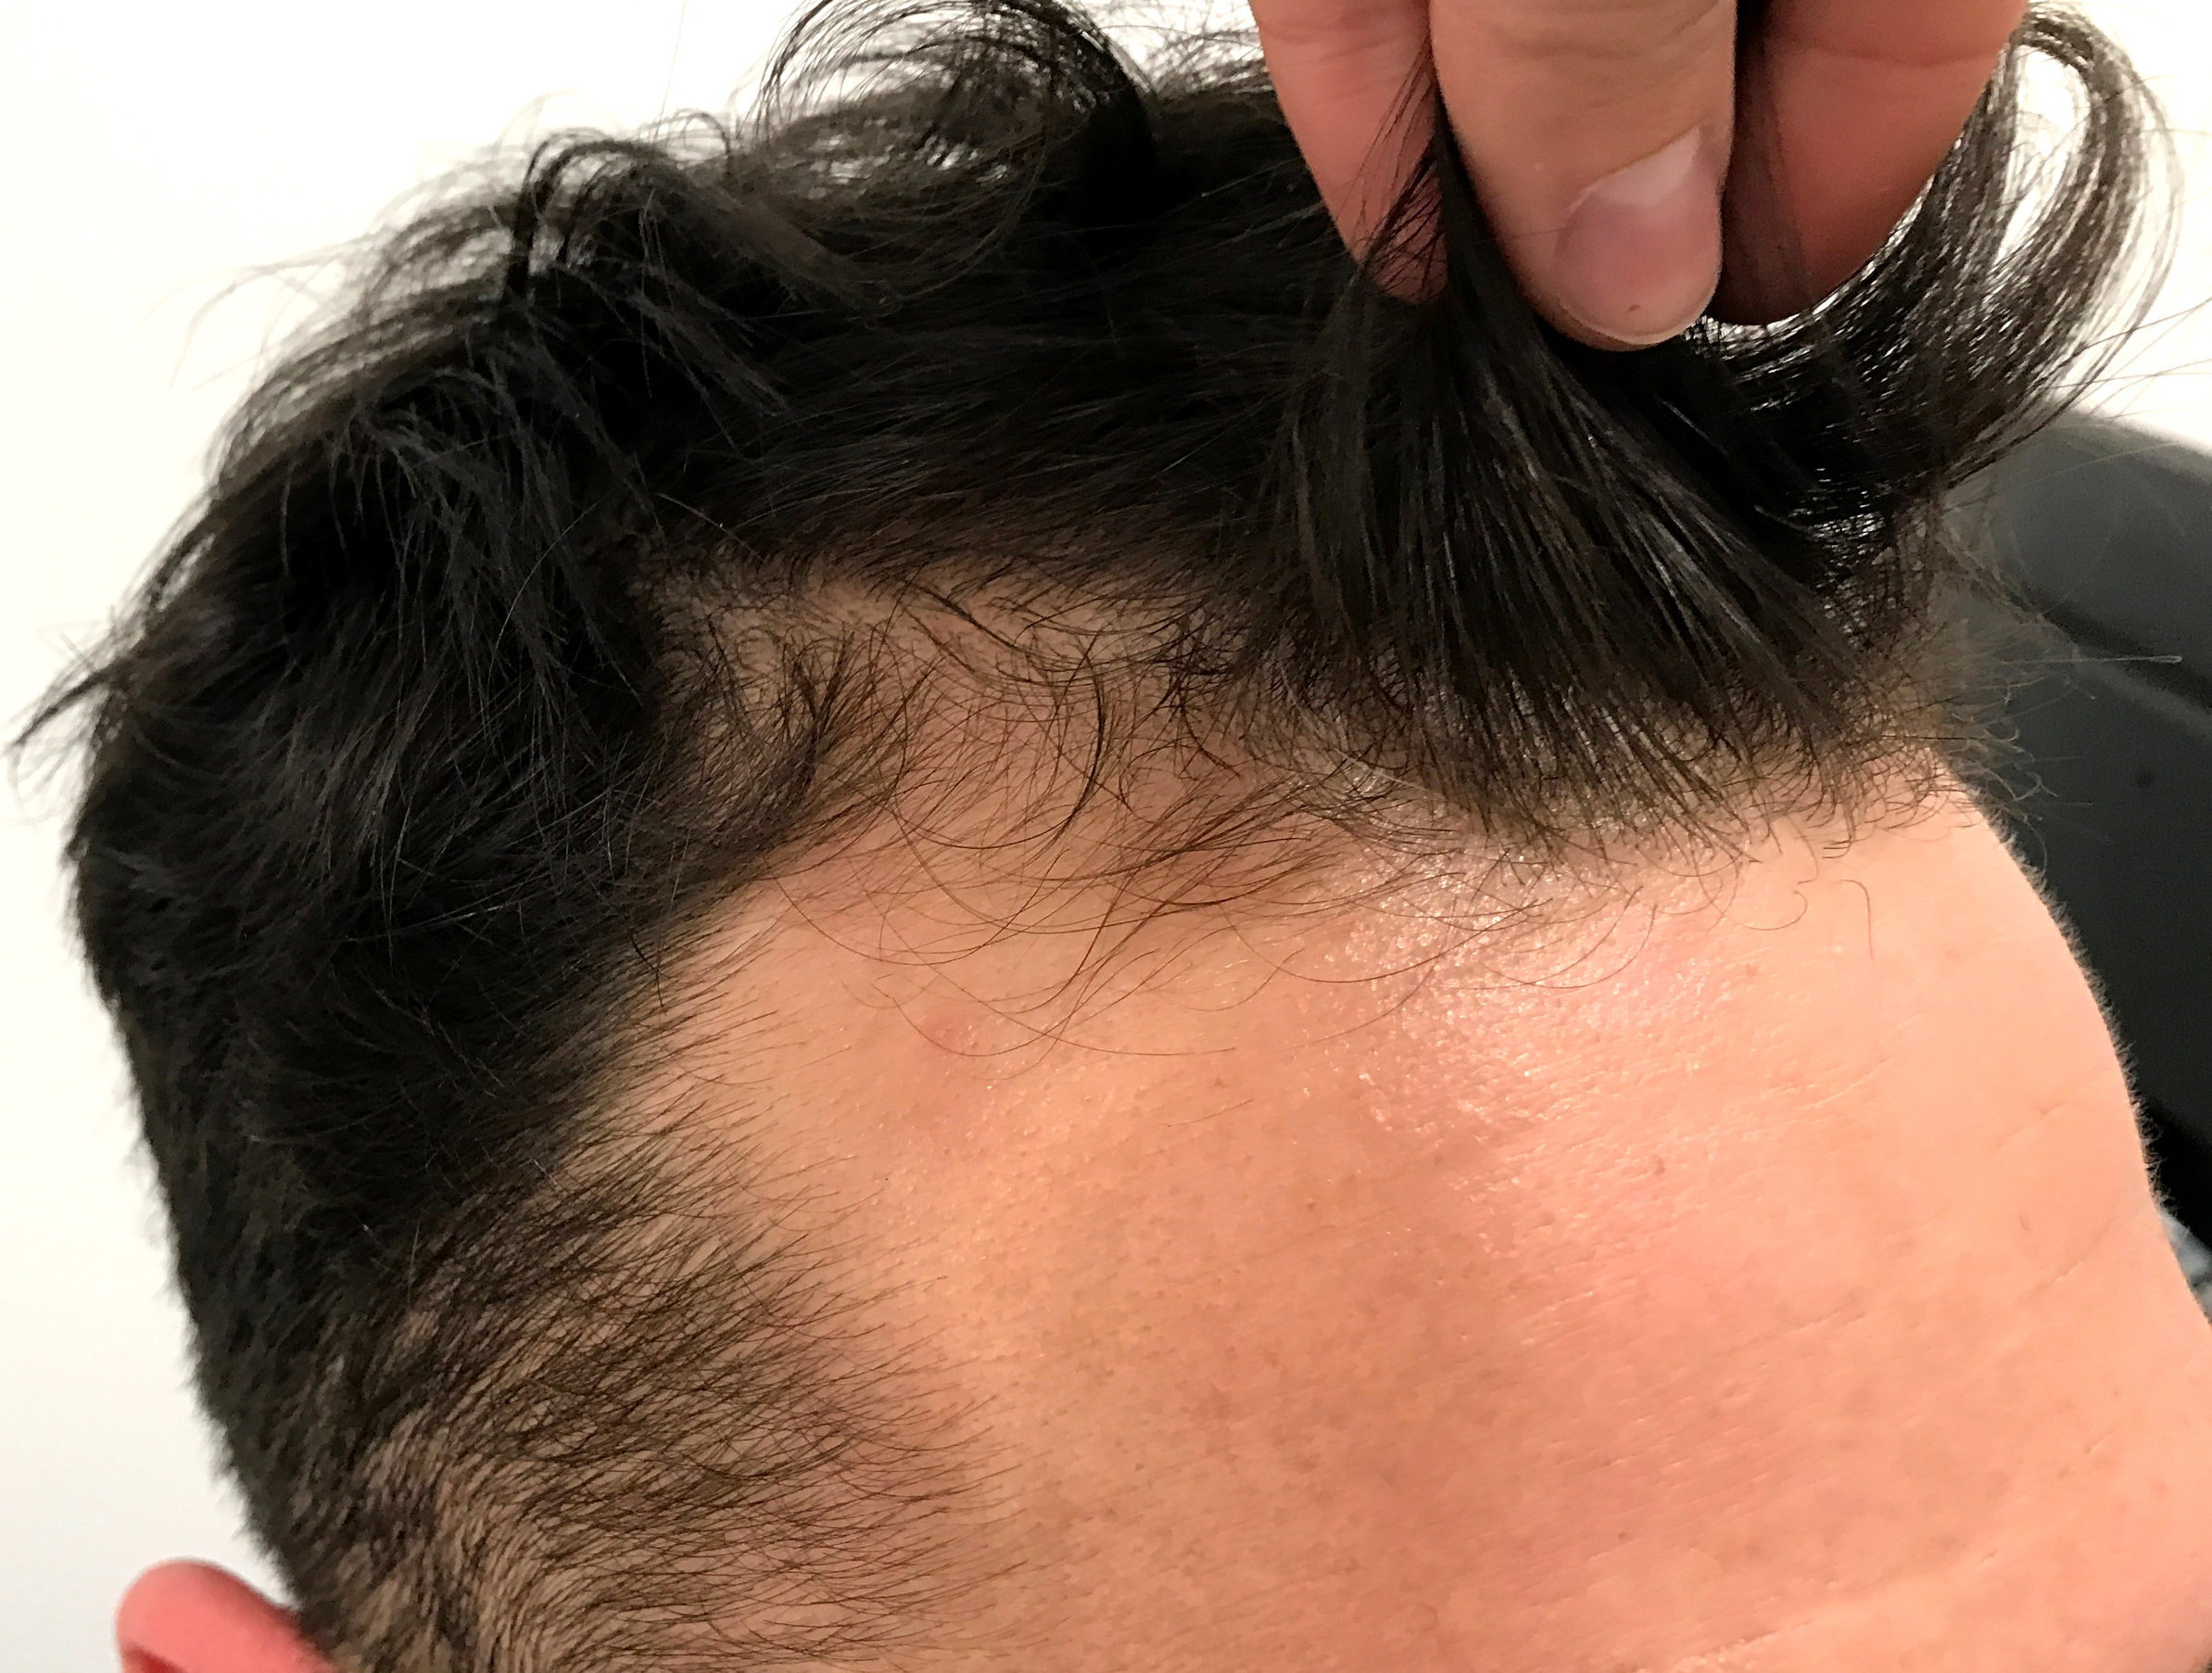 American Hair Loss Association - Hair Loss Treatment